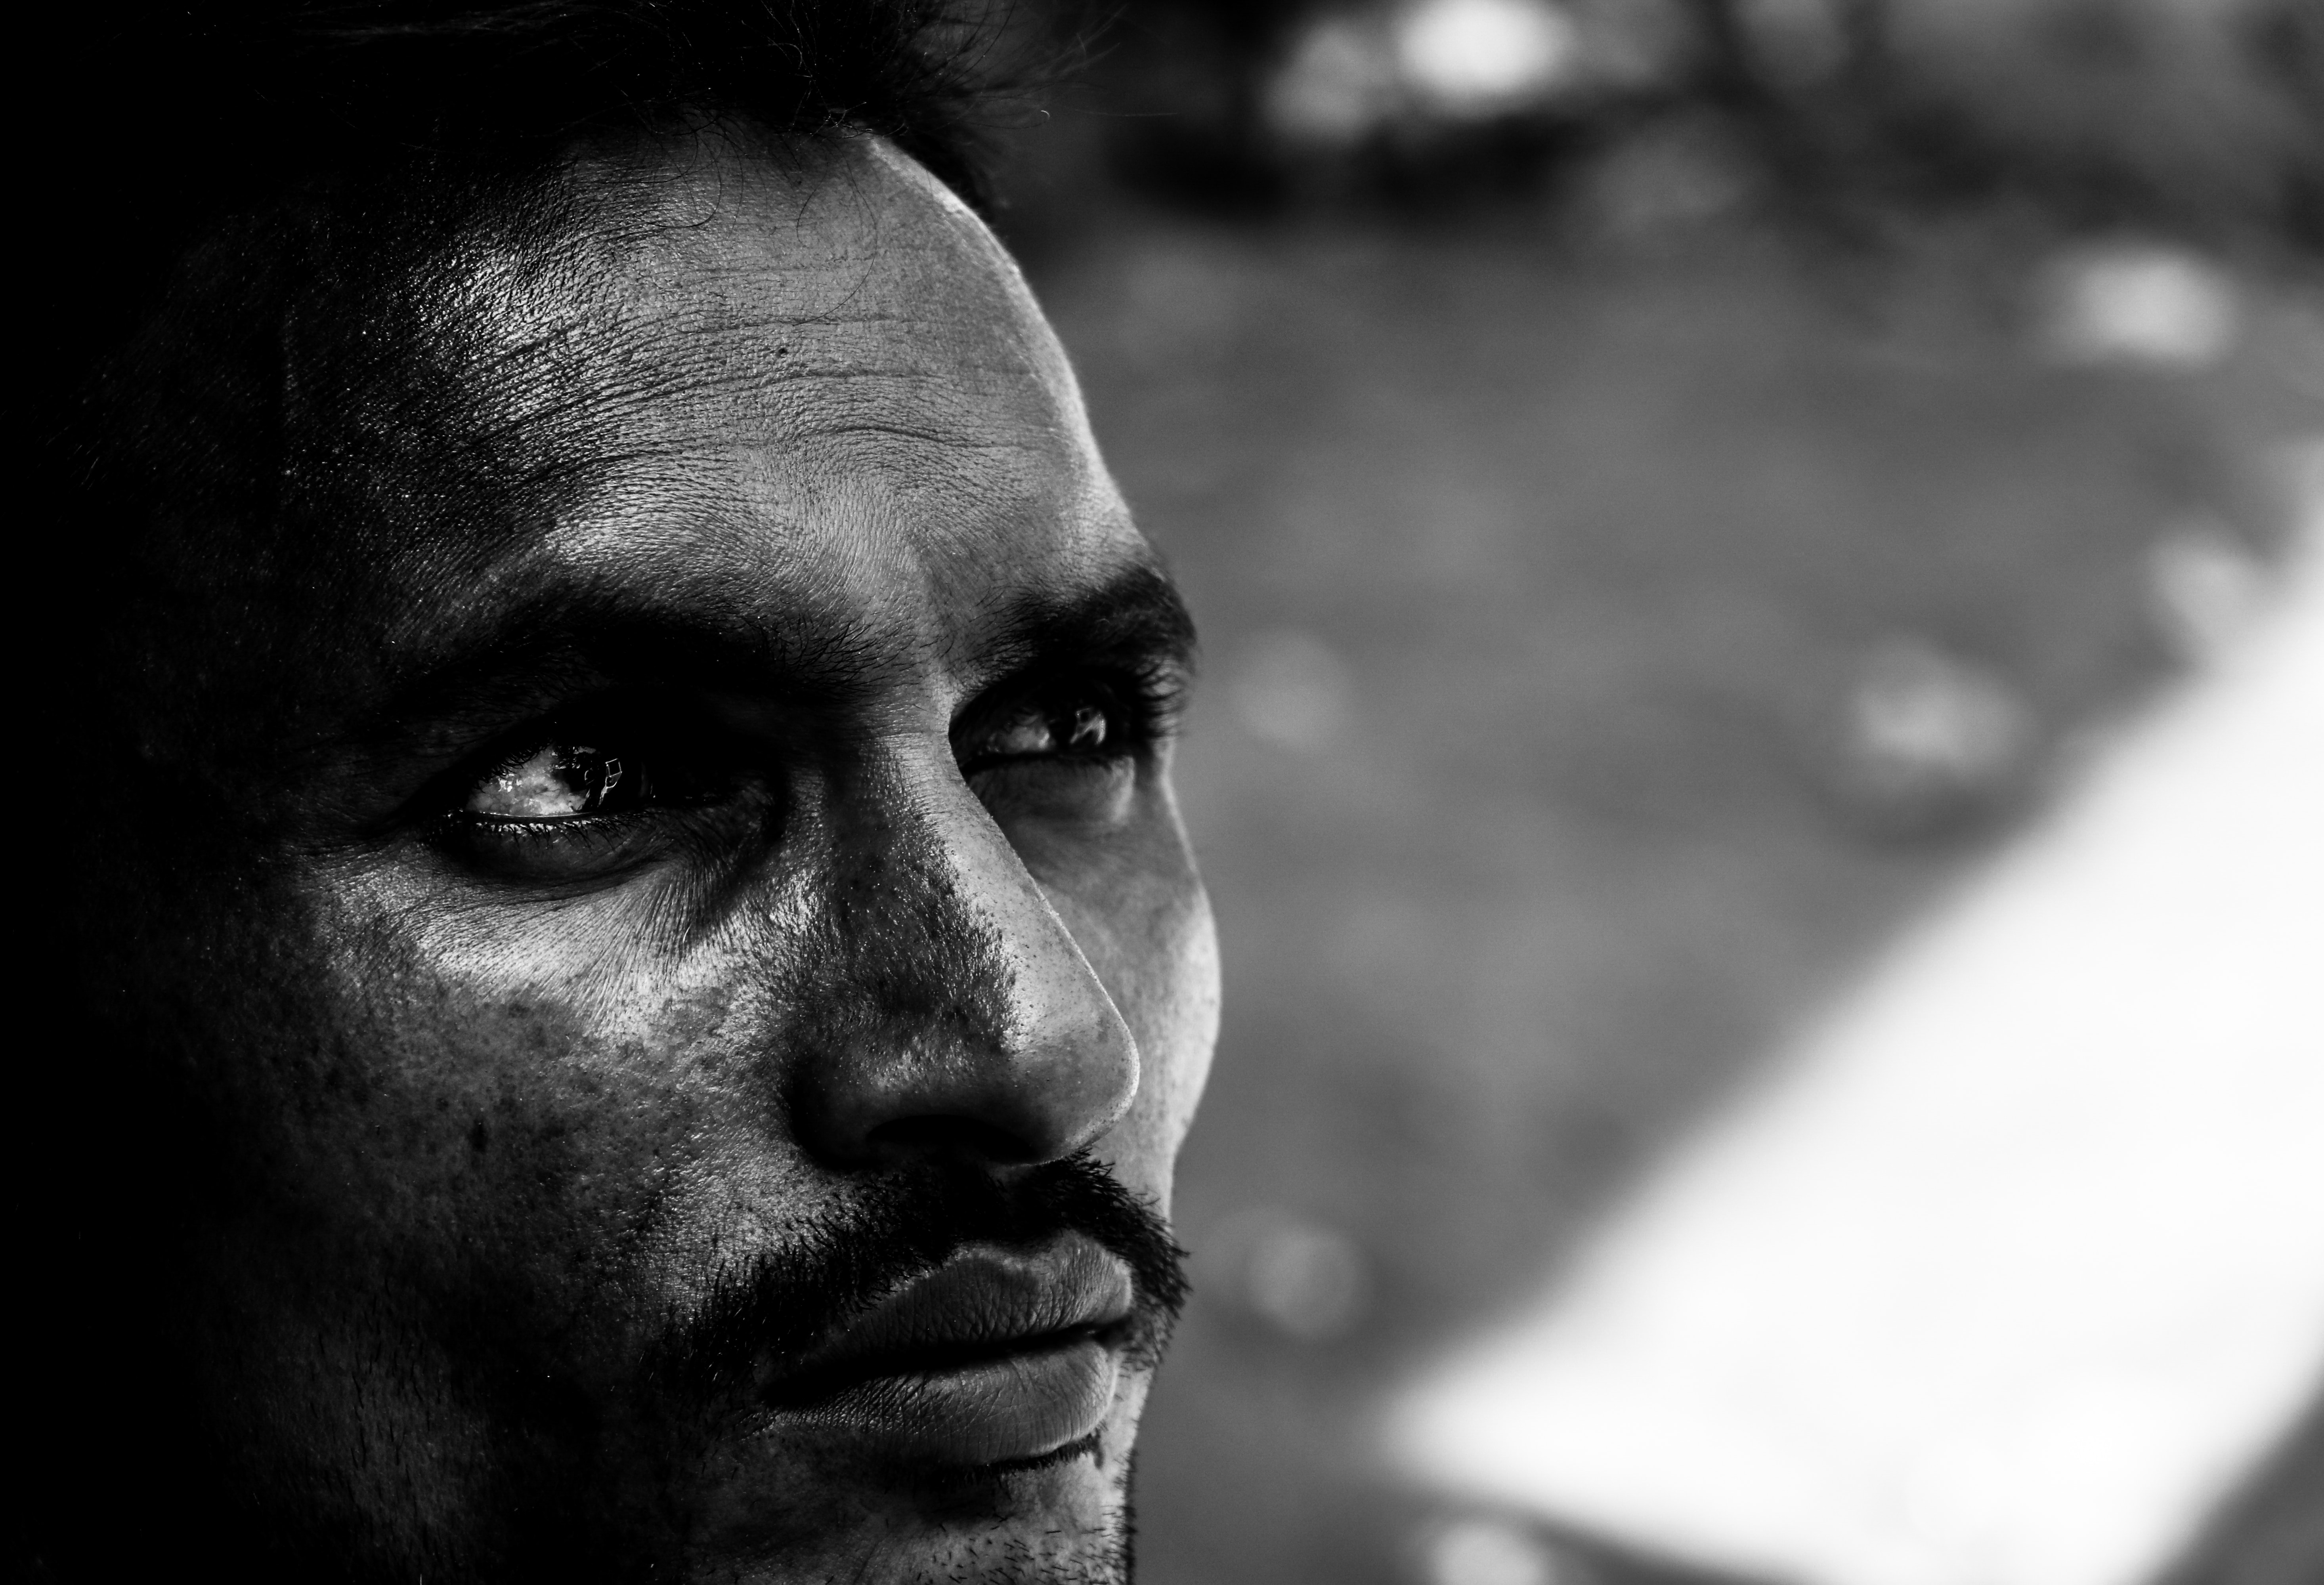 grayscale photography of man's portrait